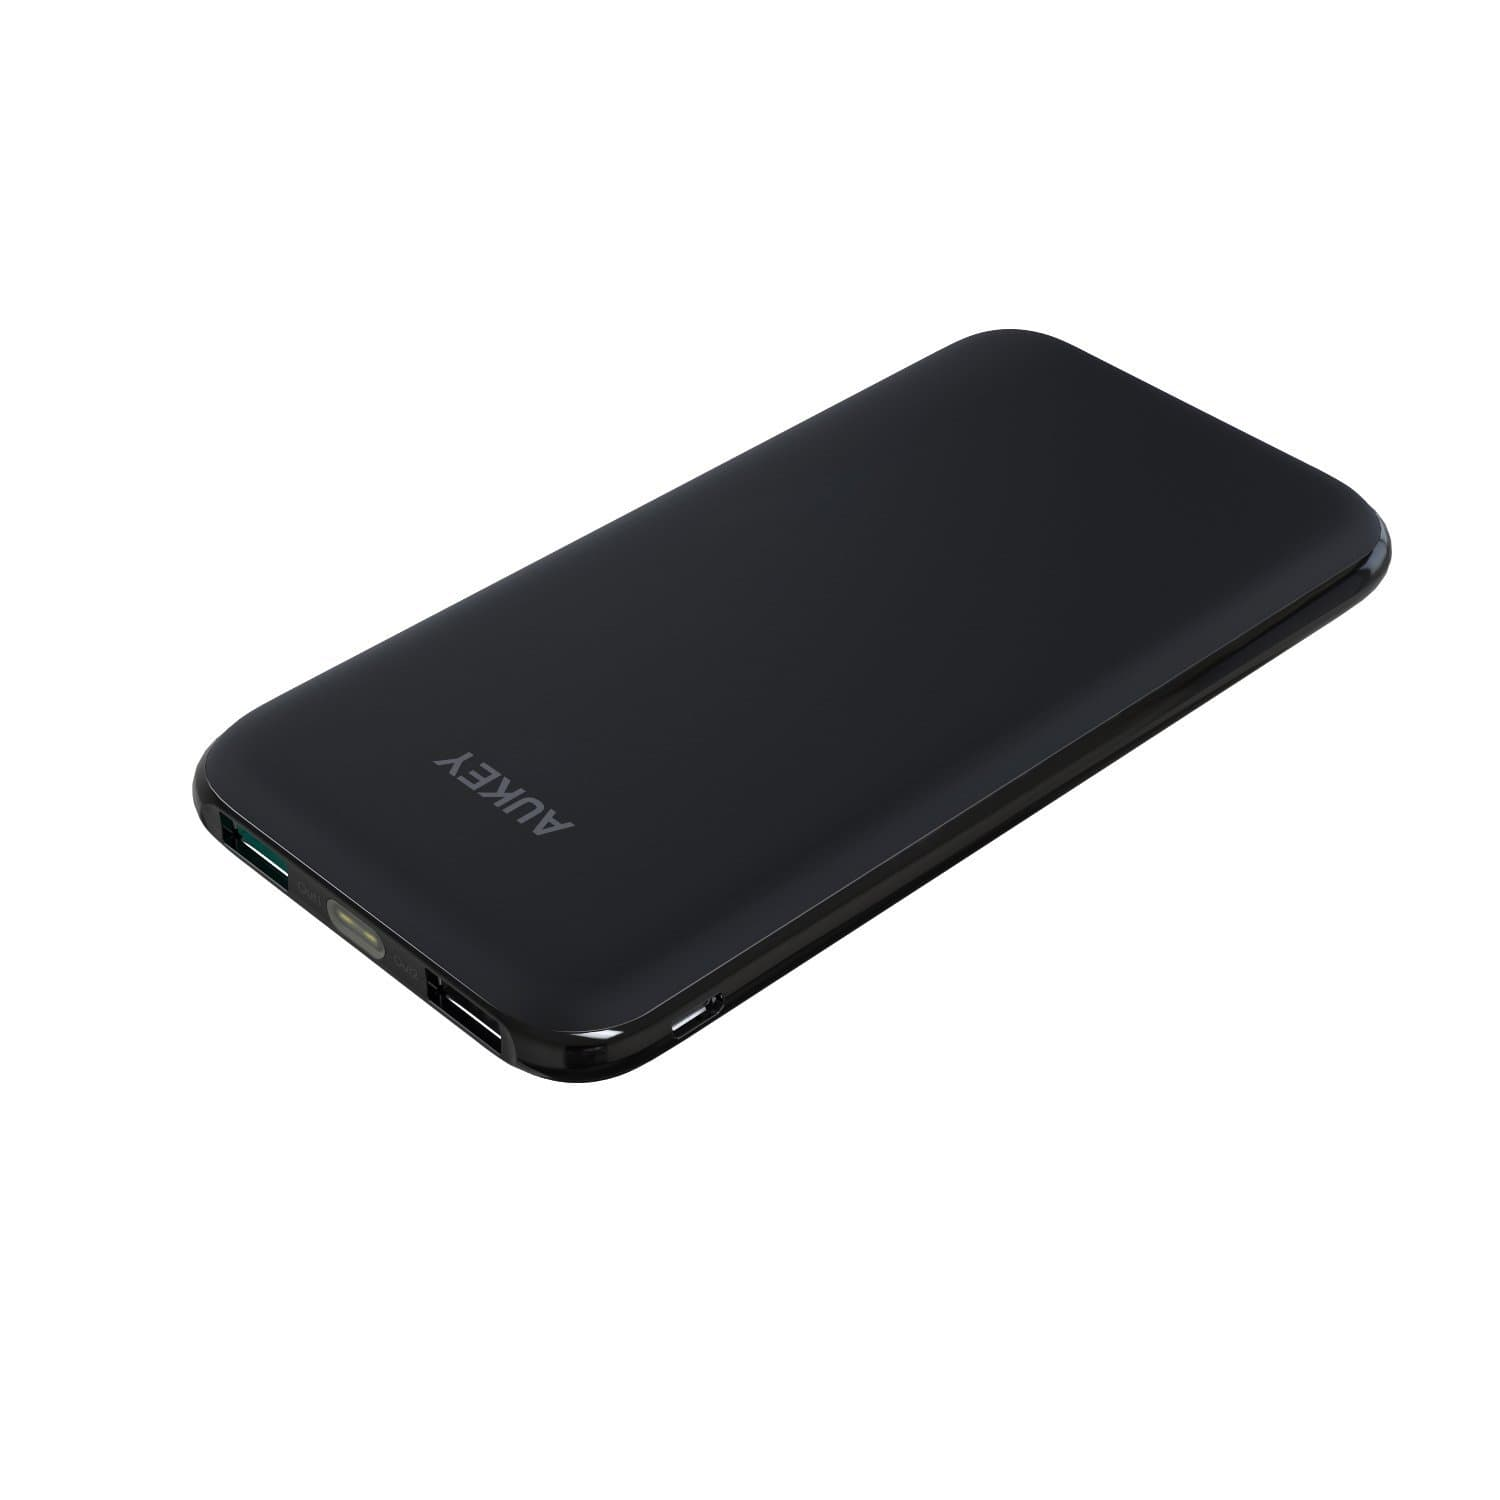 PB-N51 Dual-Port 2.4A 10000mAh Slimline Design Power Bank